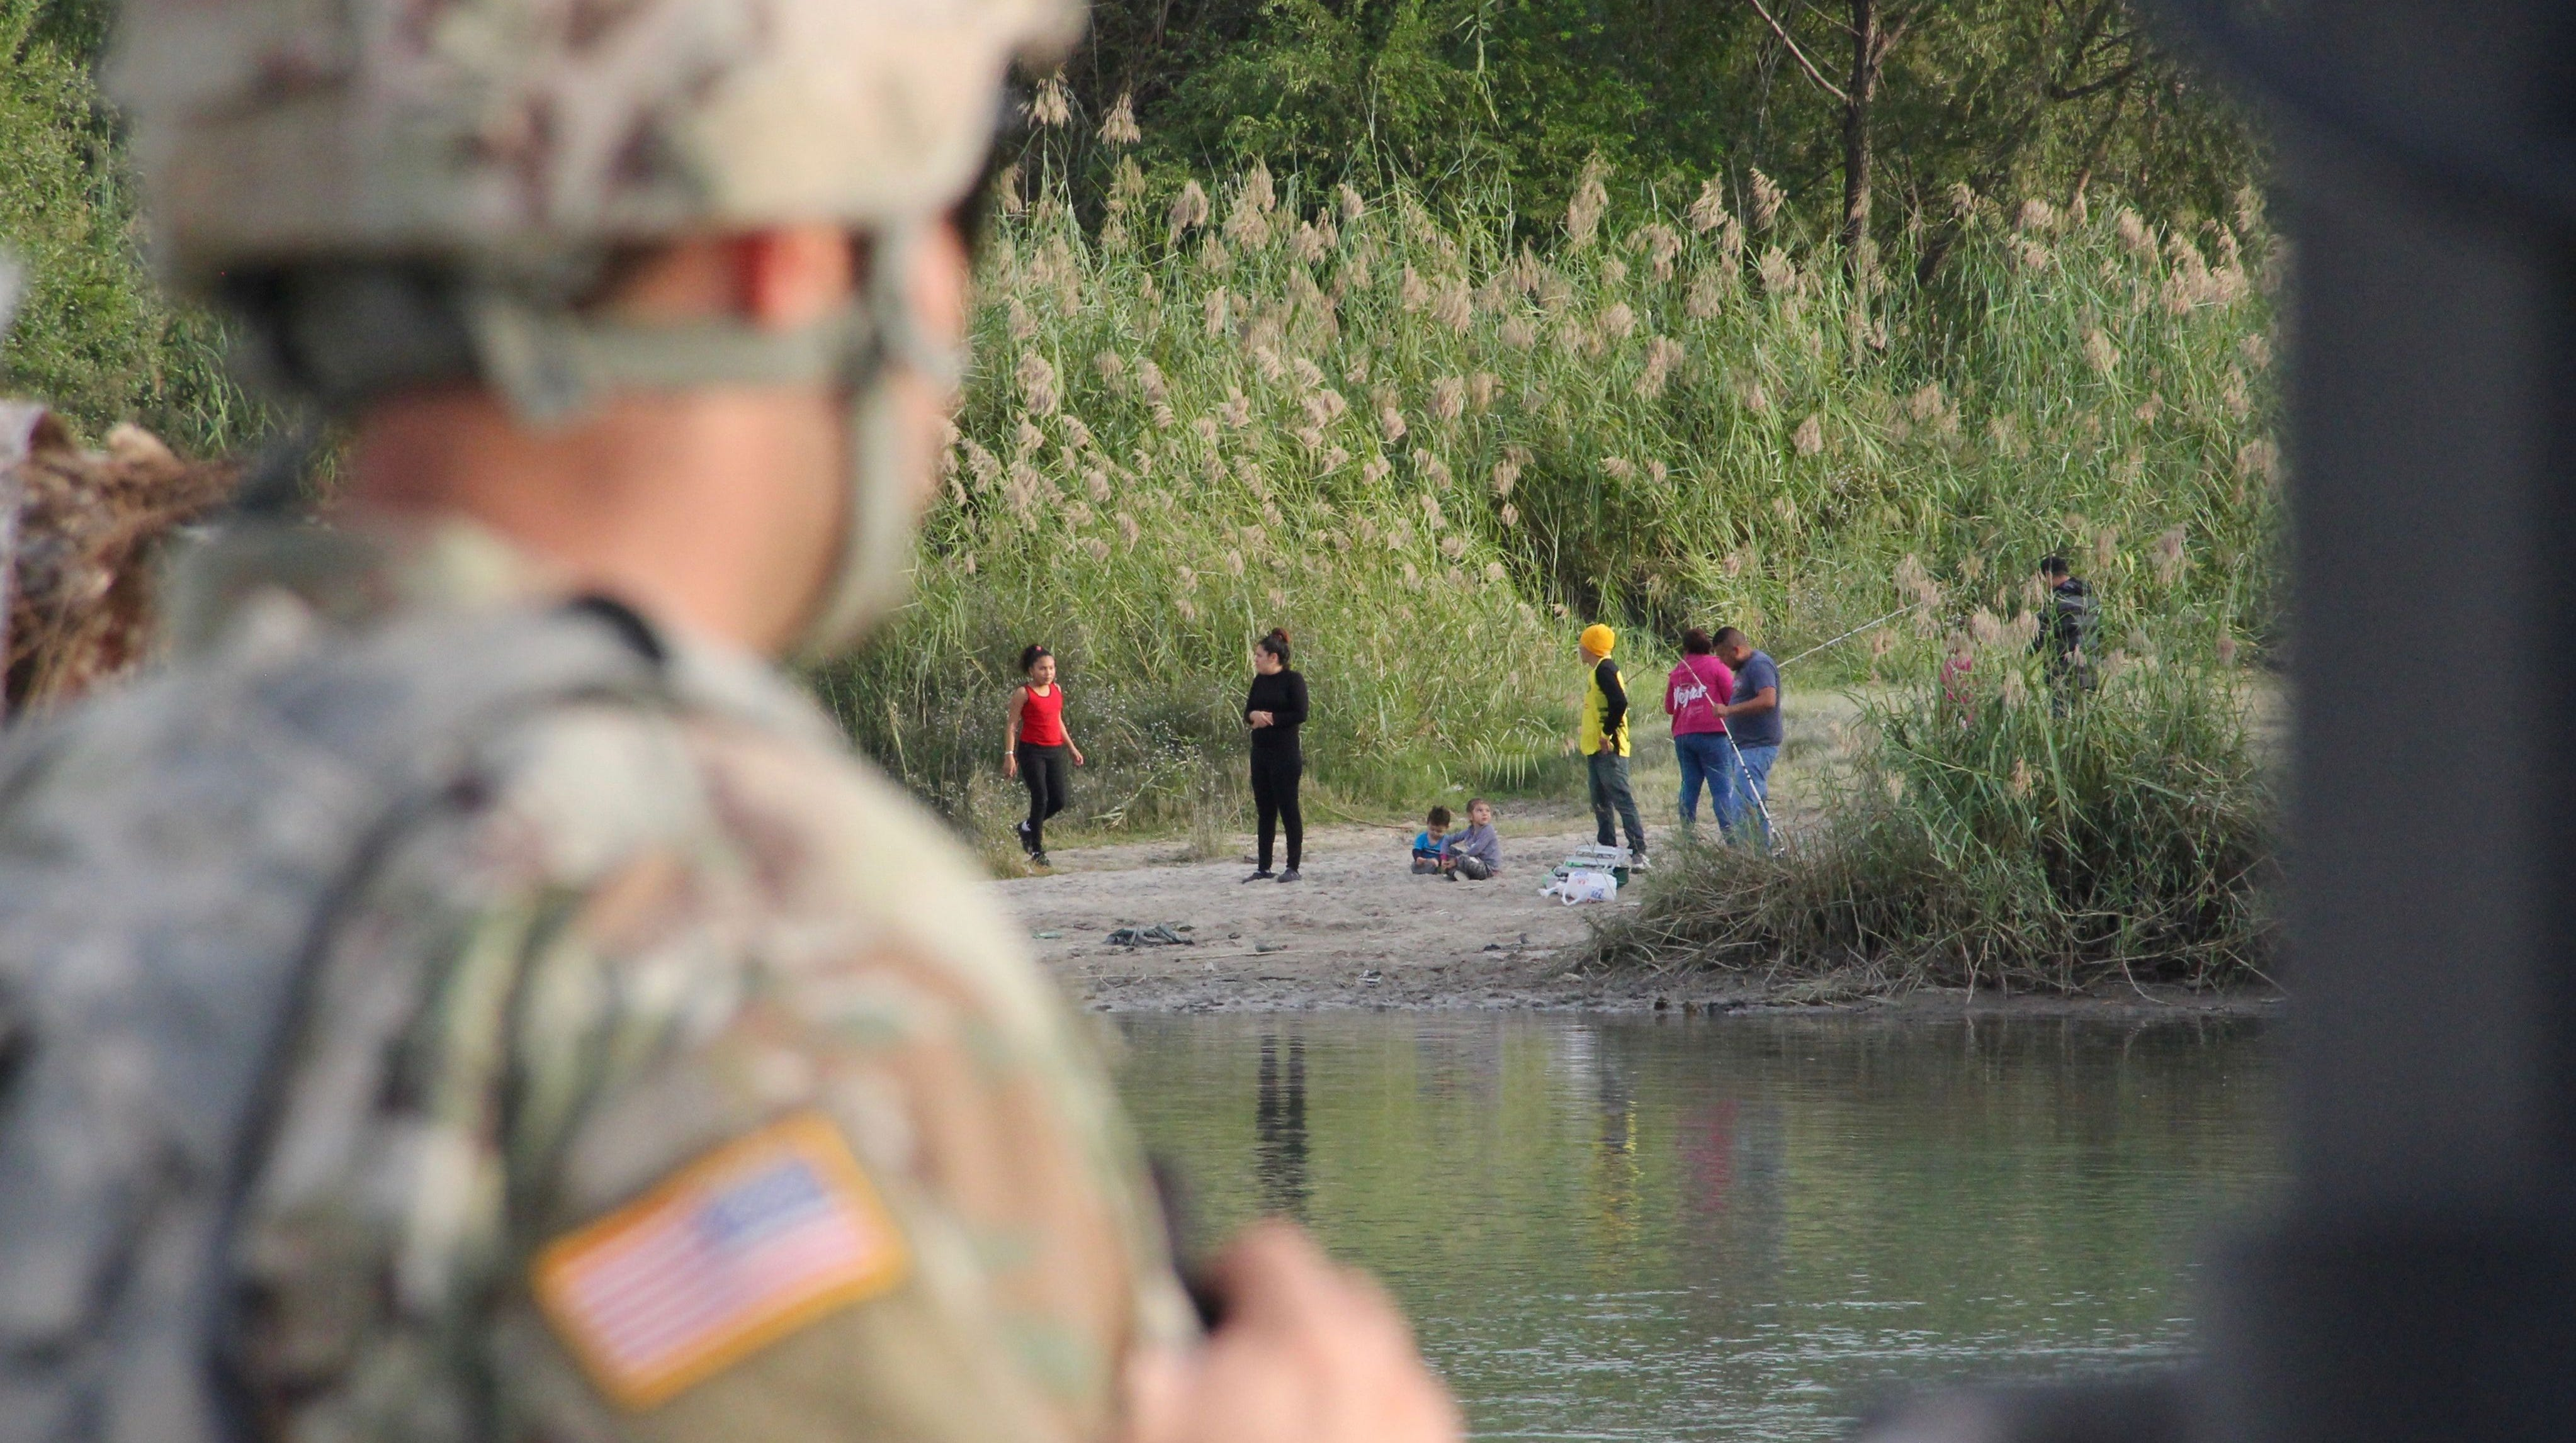 A soldier from the Kentucky-based 19th Engineer Battalion looks across the Rio Grande River from Laredo, Texas, into Nuevo Laredo, Mexico, where a group of people hang out on the river bank on Nov. 17, 2018.